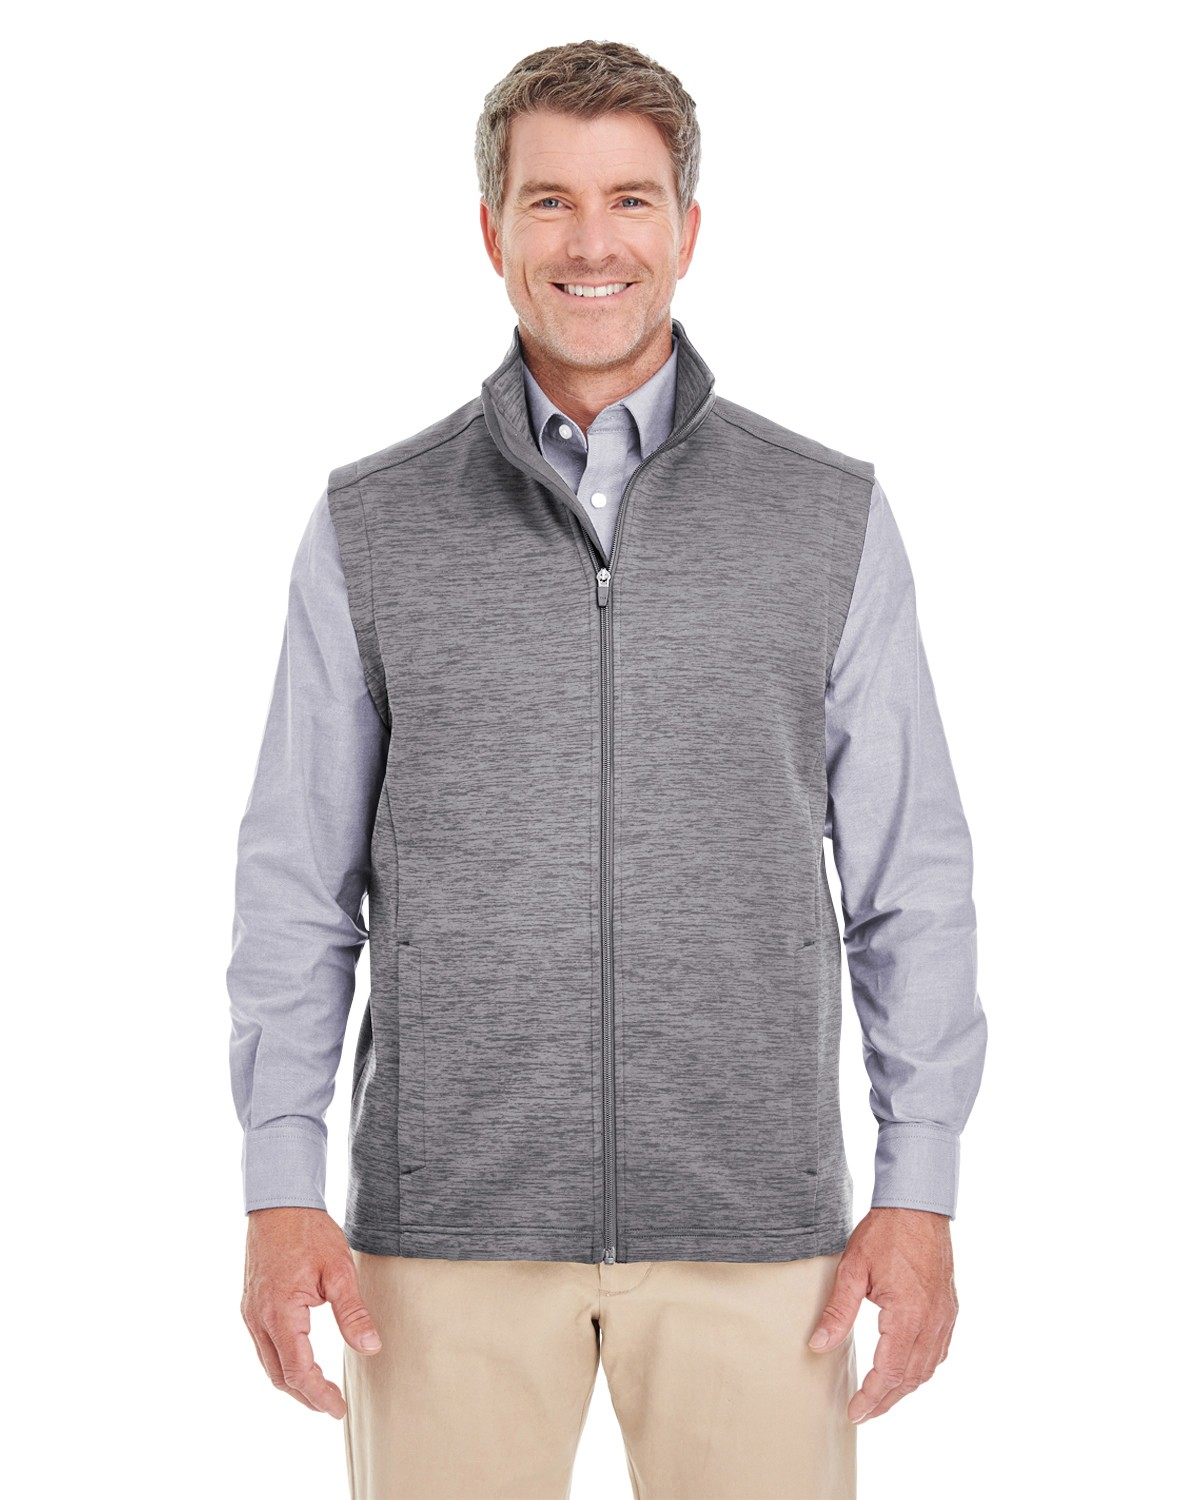 DG797 Devon & Jones DARK GREY HEATHR